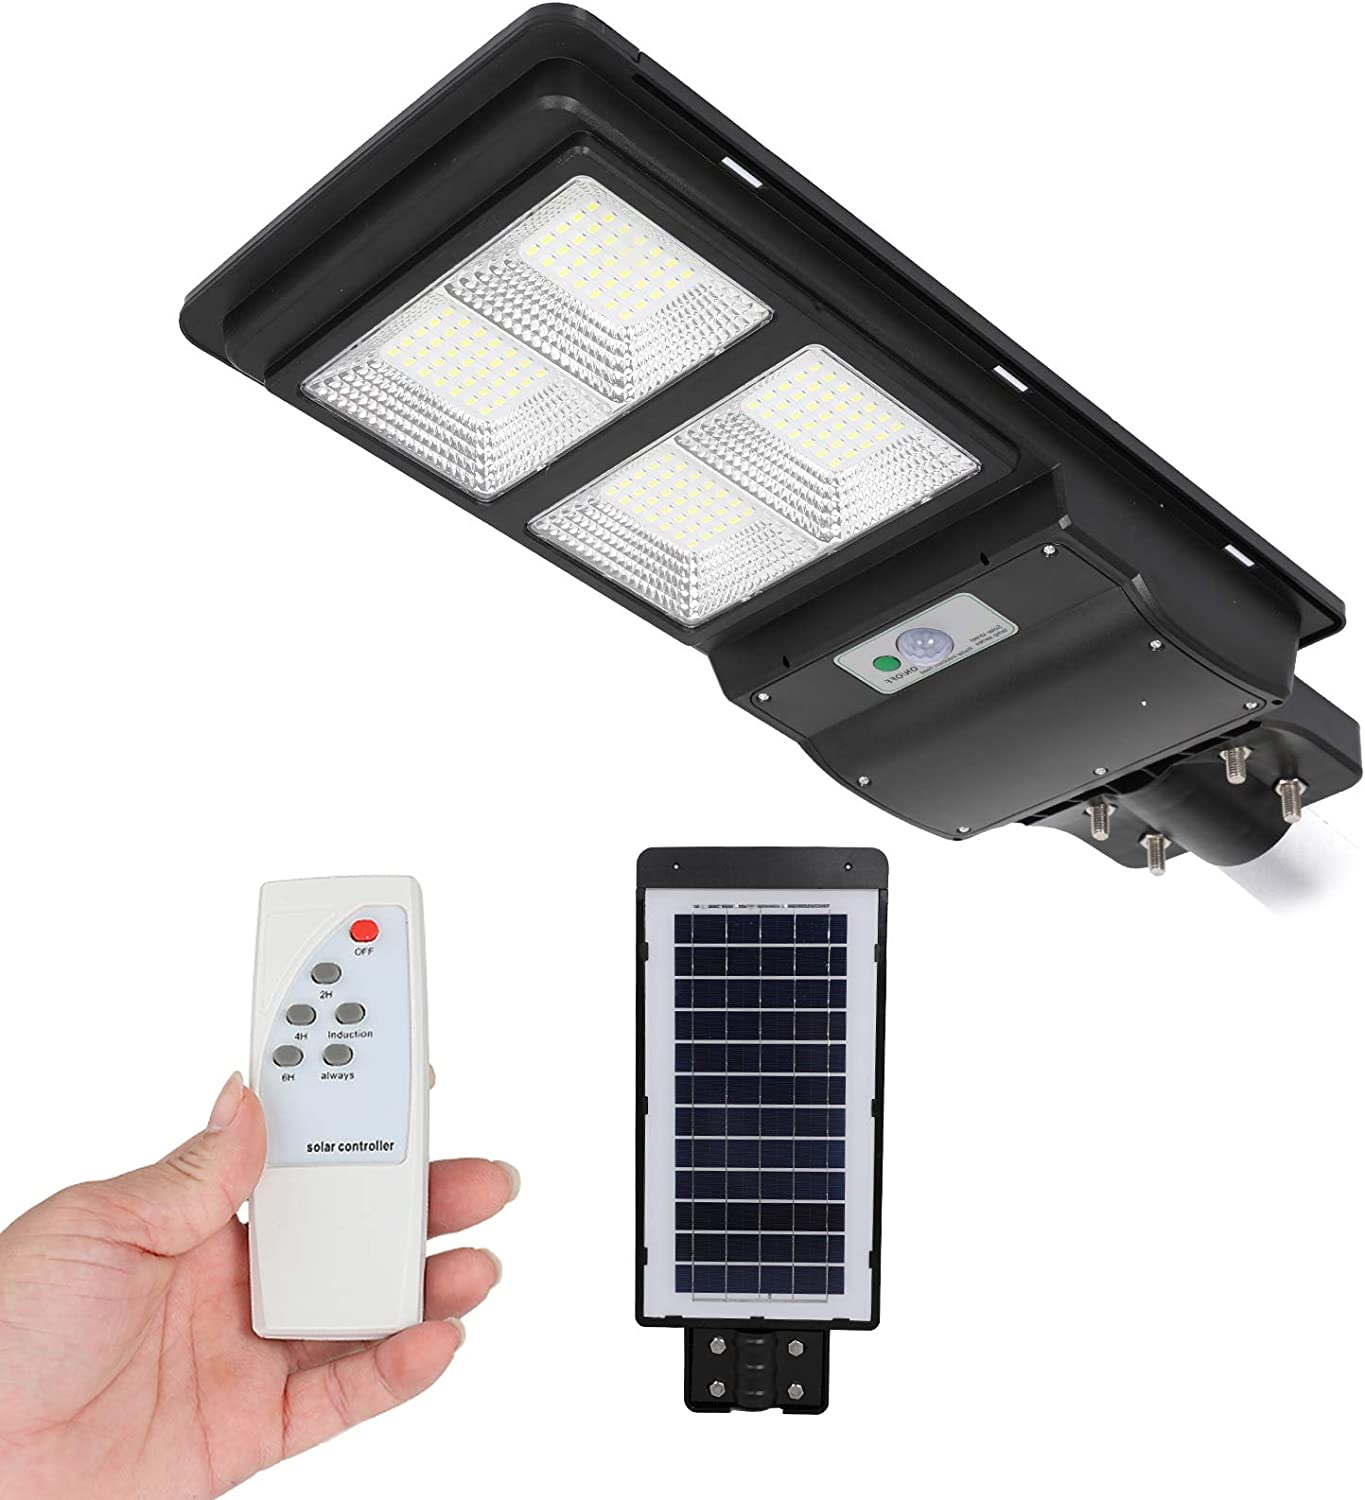 Street Light Solar Panel Street Light with Motion Sensor Outdoor Dusk to Dawn LED Solar Powered Lamp Security with Remote Control Waterproof Radar Sensor for Yard Road Garden Park 60W